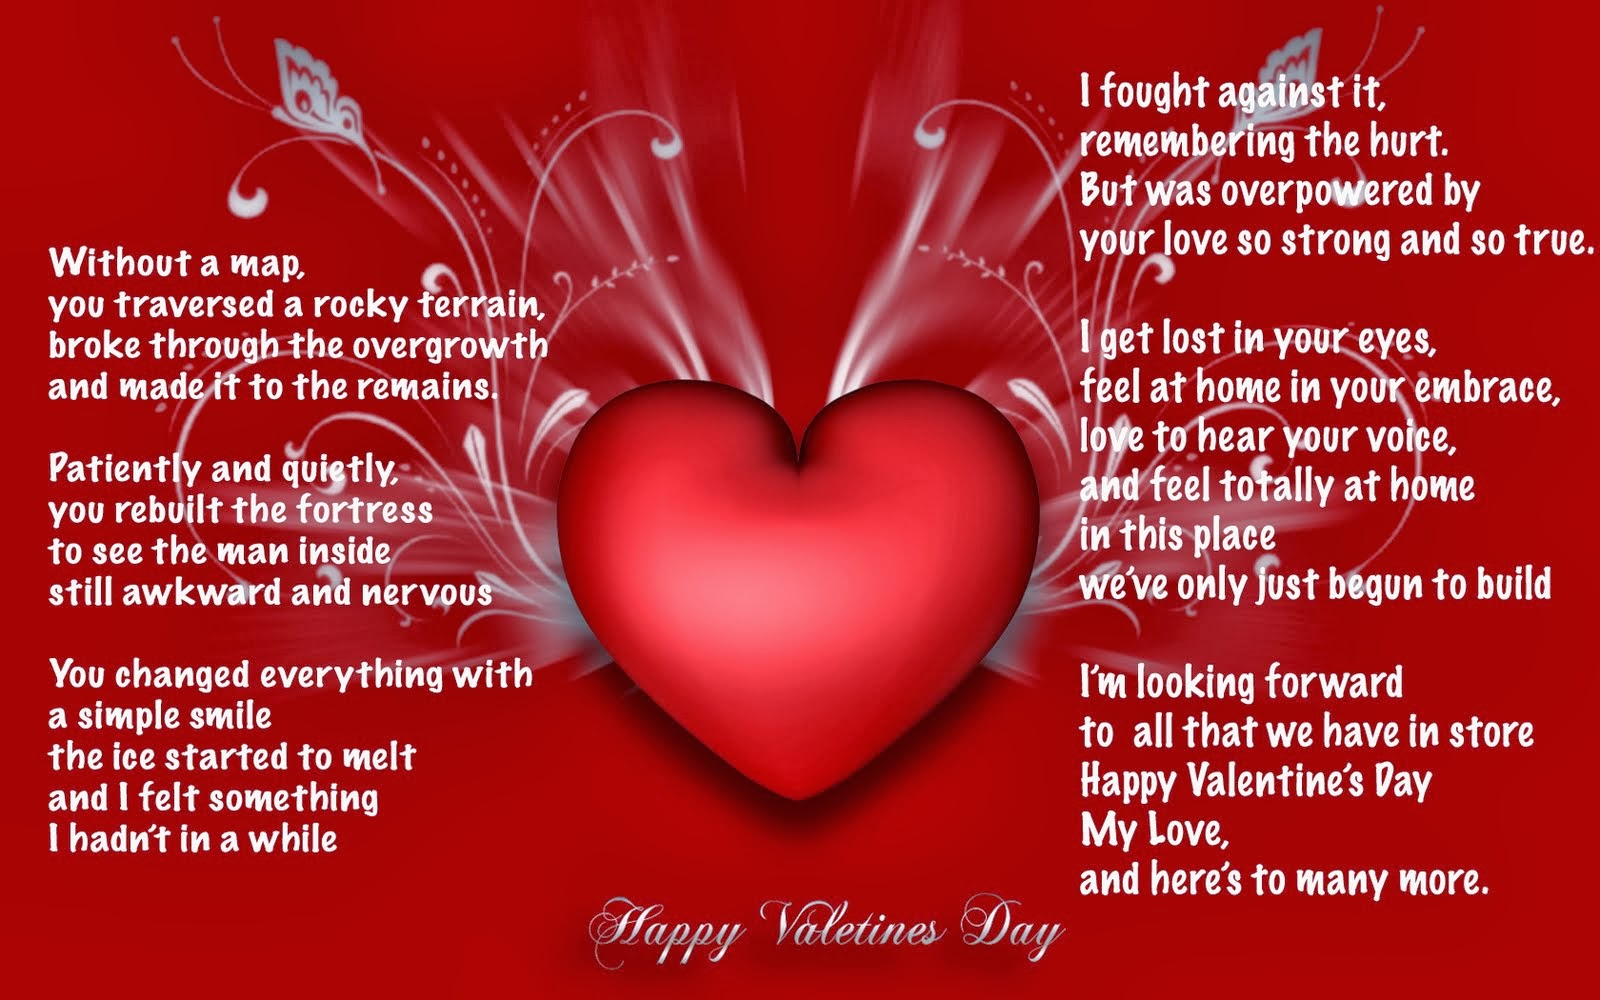 happy valentines day quotes 2016